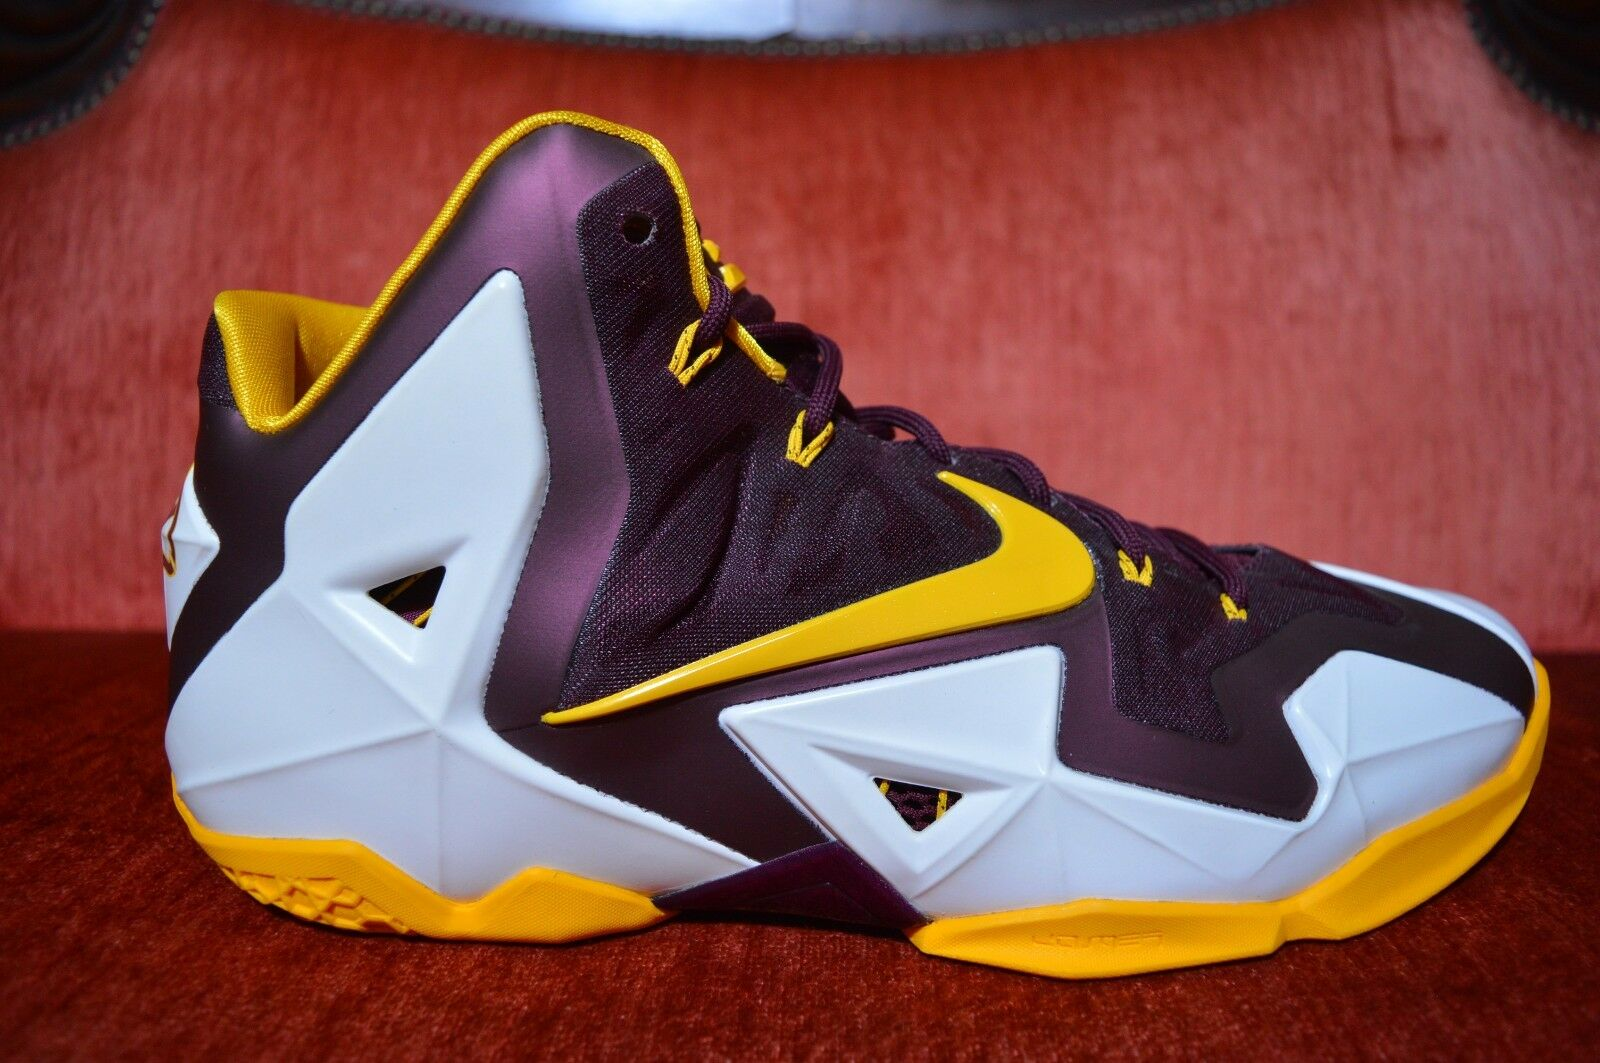 NIKE AIR MAX LEBRON 11 XI CTK CHRIST THE KING PROMO SAMPLE Maroon YELLOW Size 12